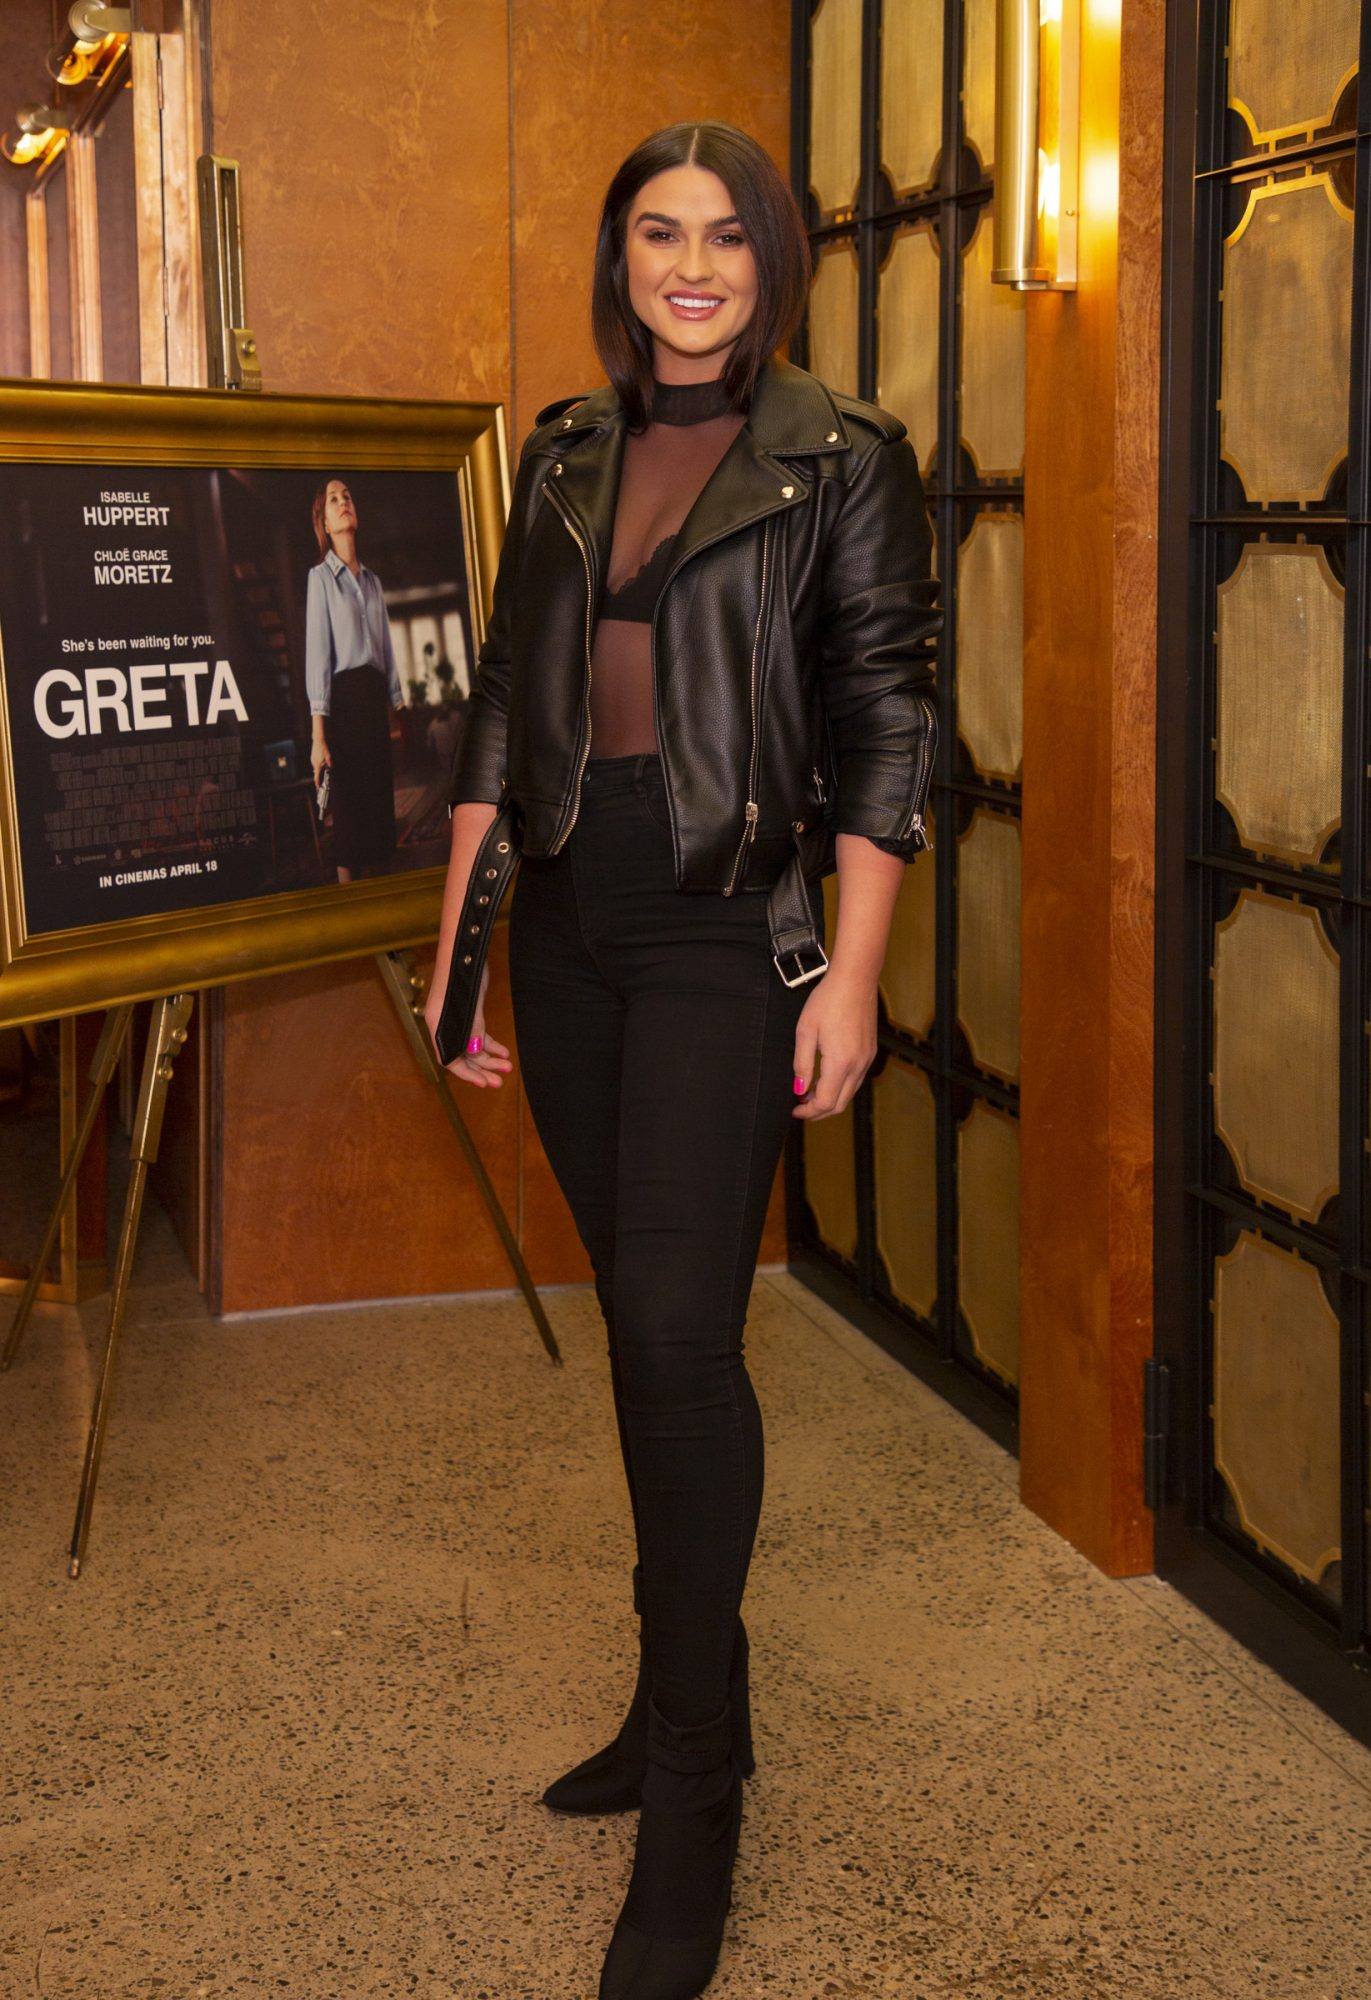 Lynn Kelly pictured at a special preview screening of GRETA at The Stella Theatre, Ranelagh. GRETA, directed by Academy Award®-winner Neil Jordan and starring Chloë Grace Moretz and Isabelle Huppert, hits cinemas across Ireland this Thursday 18th April. Photo: Anthony Woods